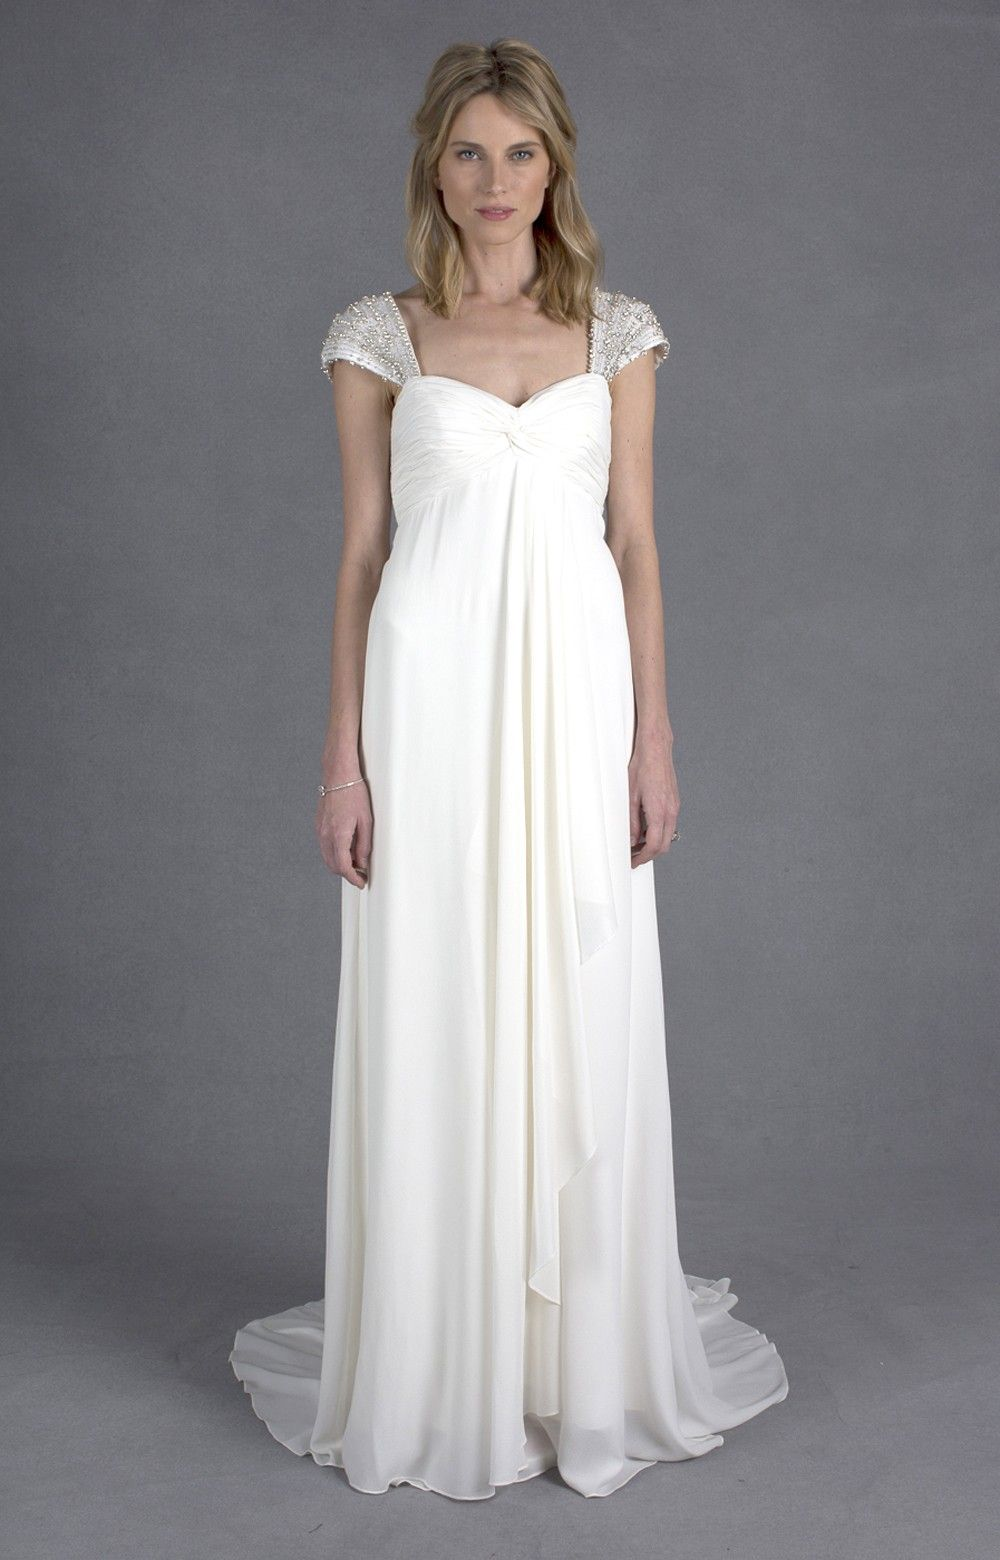 Maternity beach wedding dresses   Not Found  Wedding Bells  Pinterest  Bridal gowns Gowns and